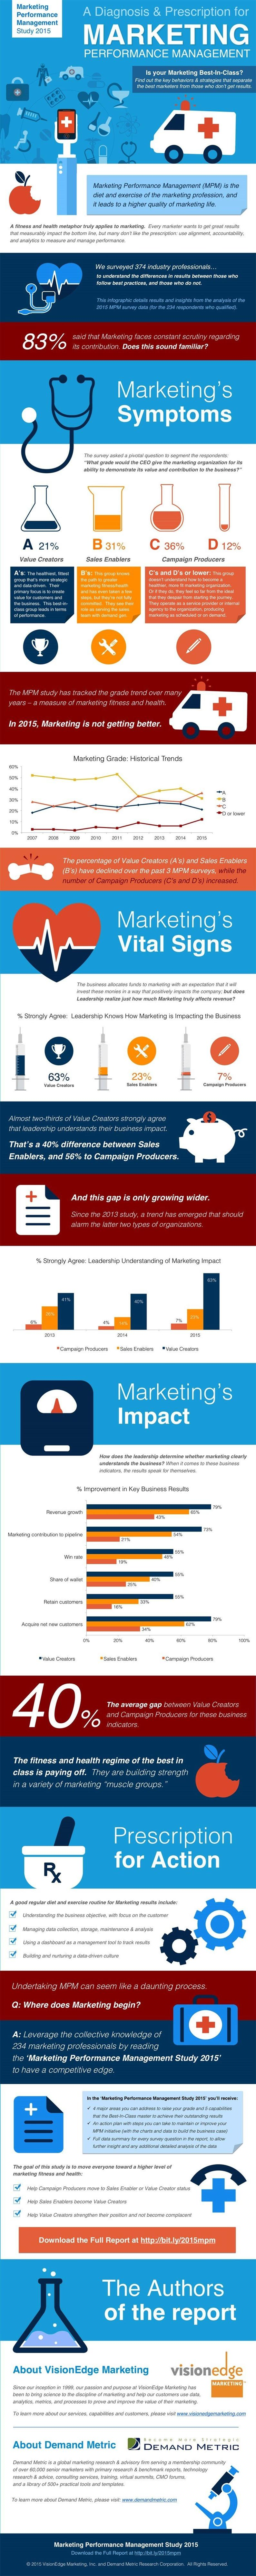 Infographic Marketers Question What Have You Done for Me Lately?